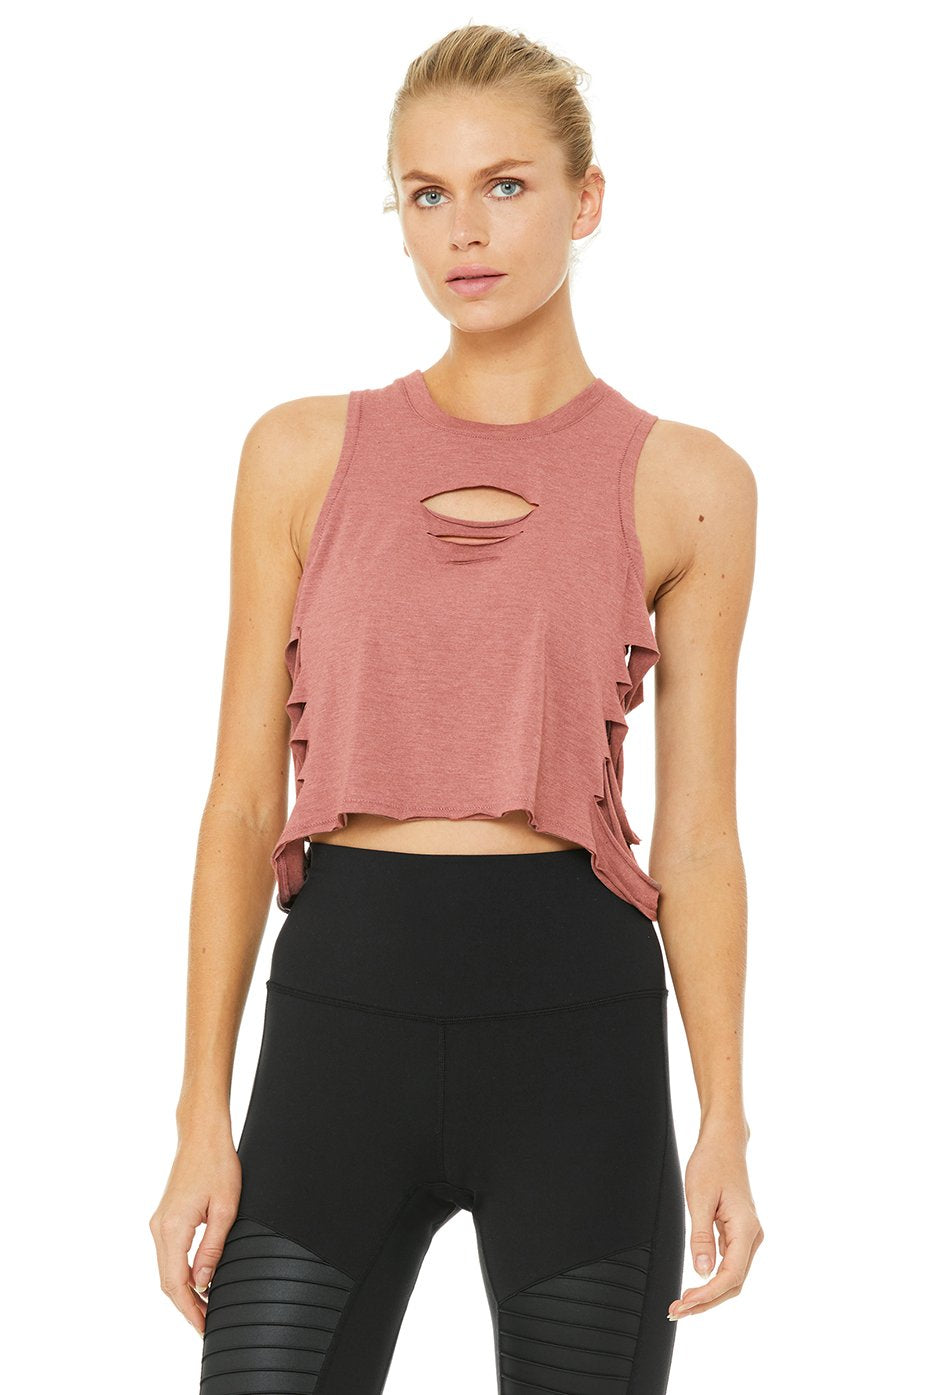 Alo Yoga Cut It Out Cropped Tank - Rosewater Heather